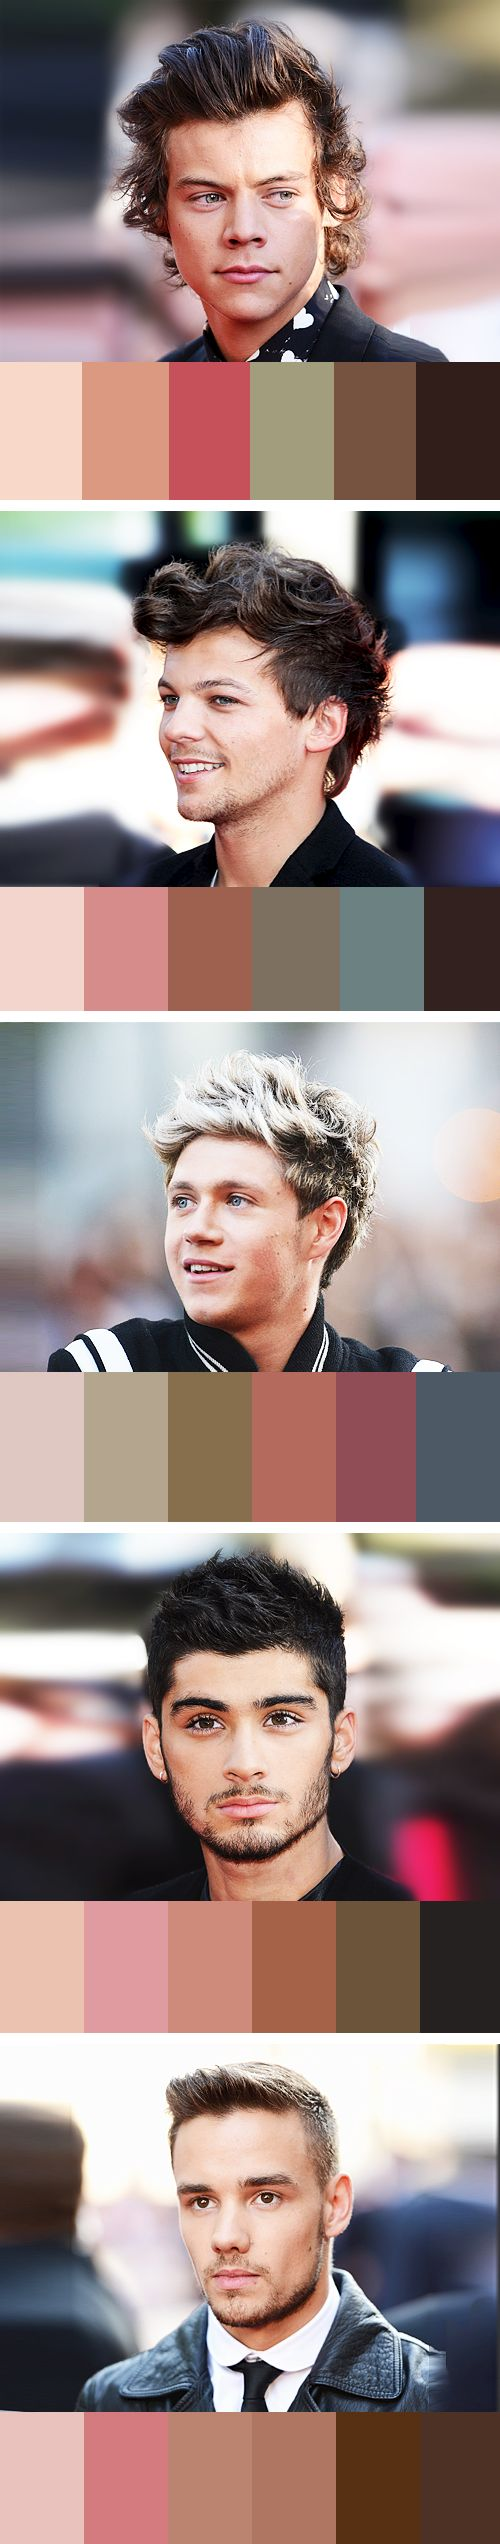 One Direction did this just make them into color schemes